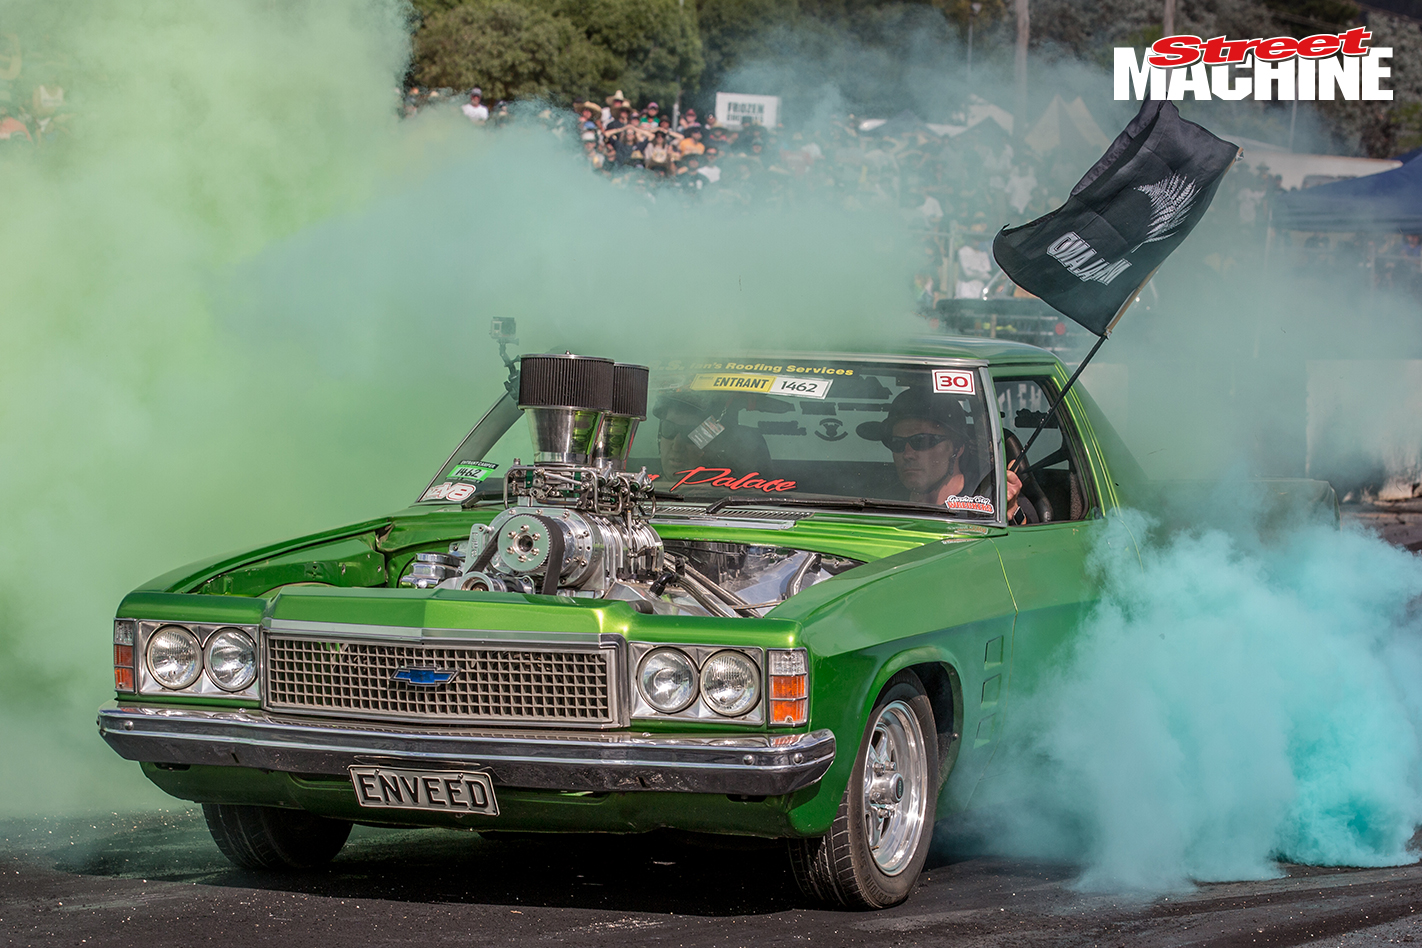 HZ Holden Ute ENVEED Burnout